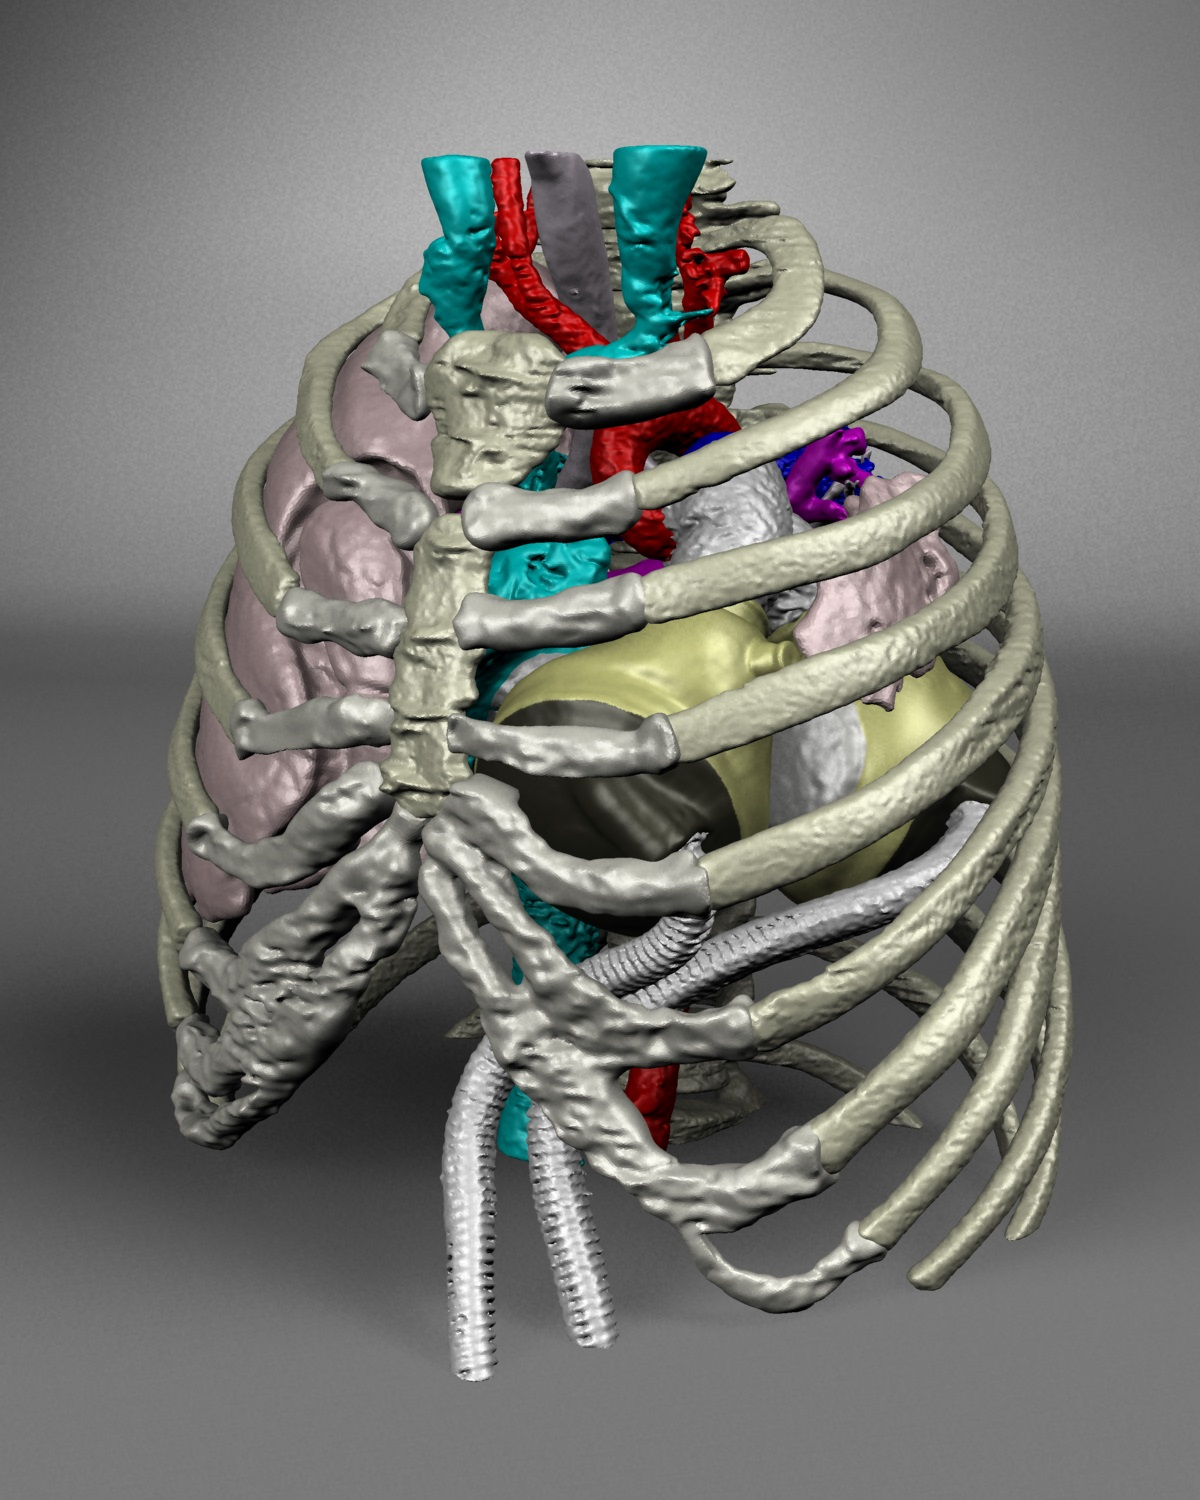 Virtual artificial heart implantation project earns tech competition award